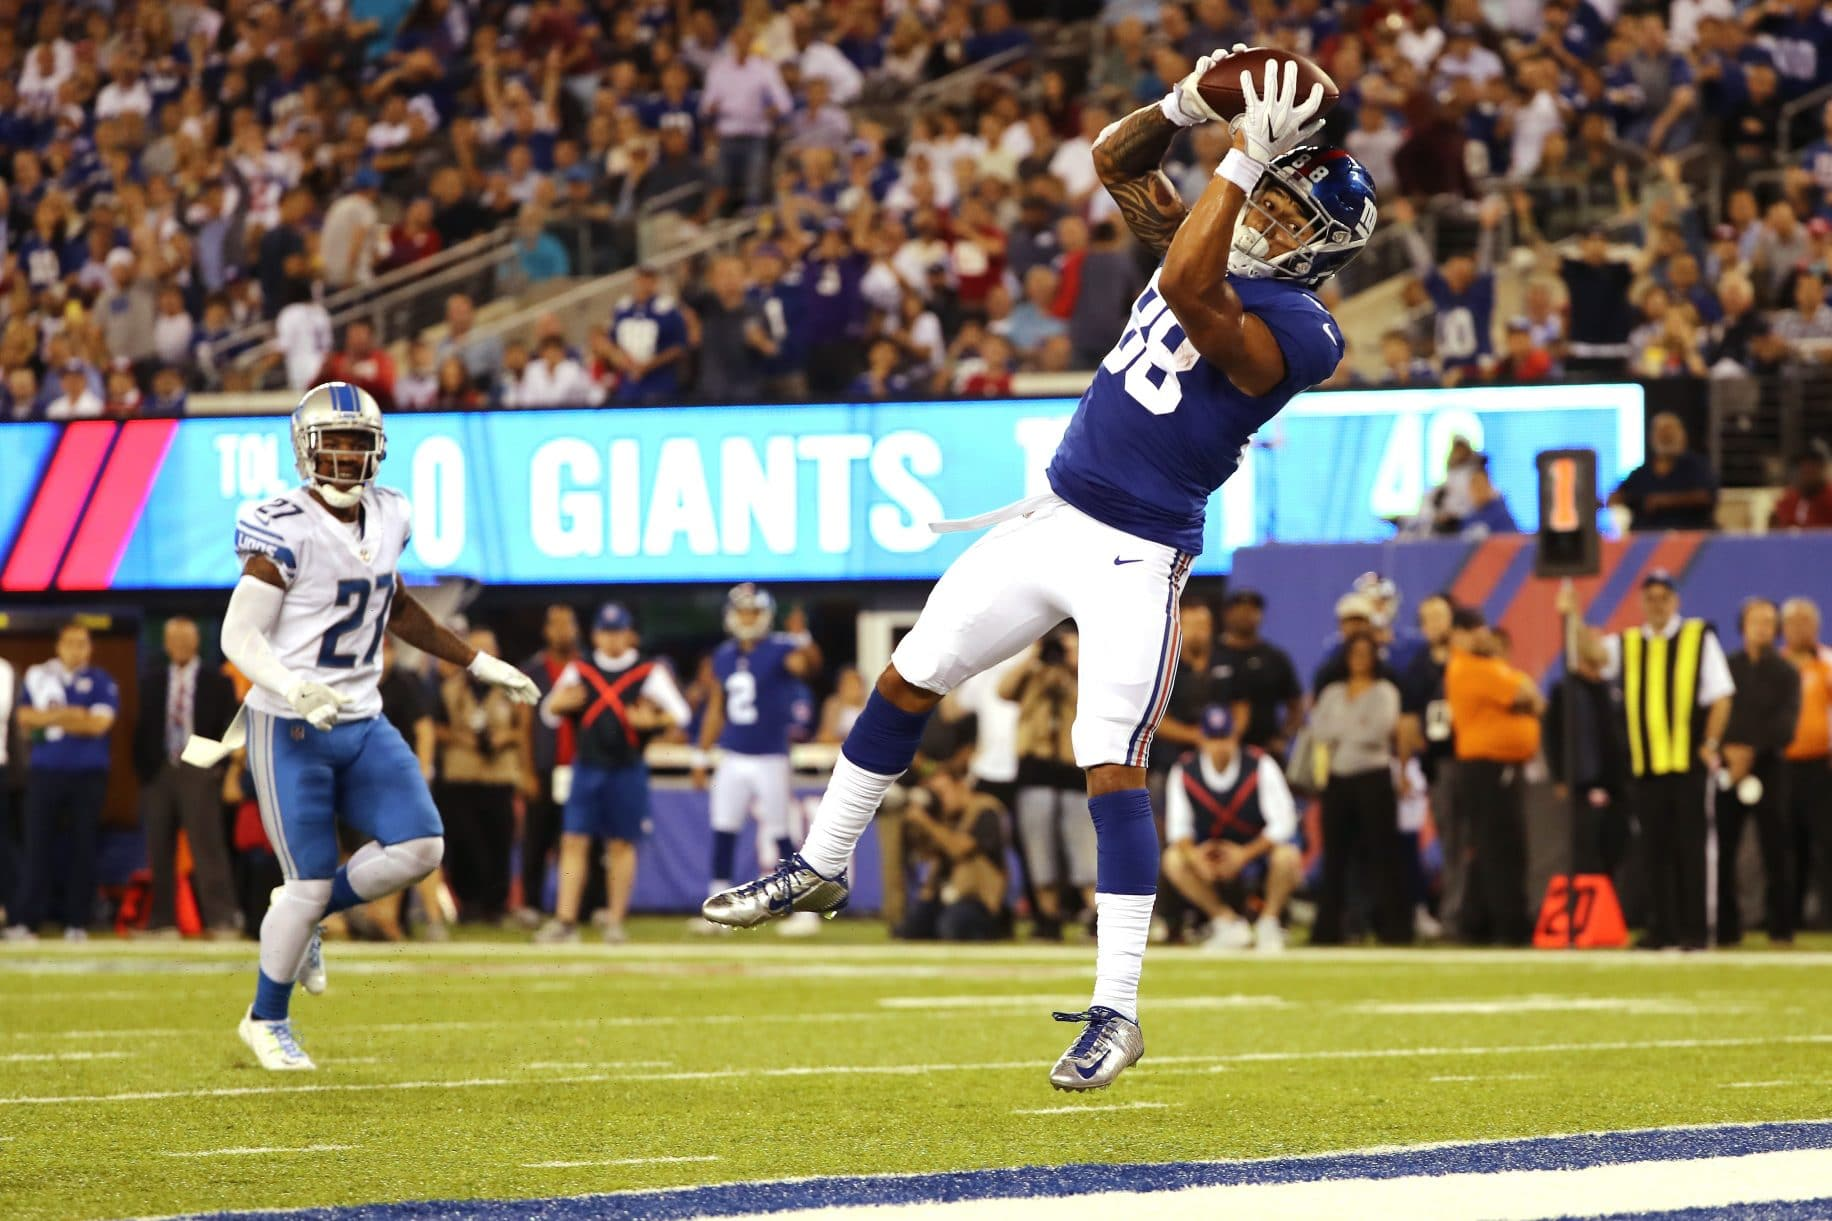 New York Giants Need to Feature Evan Engram Against the Chargers 2